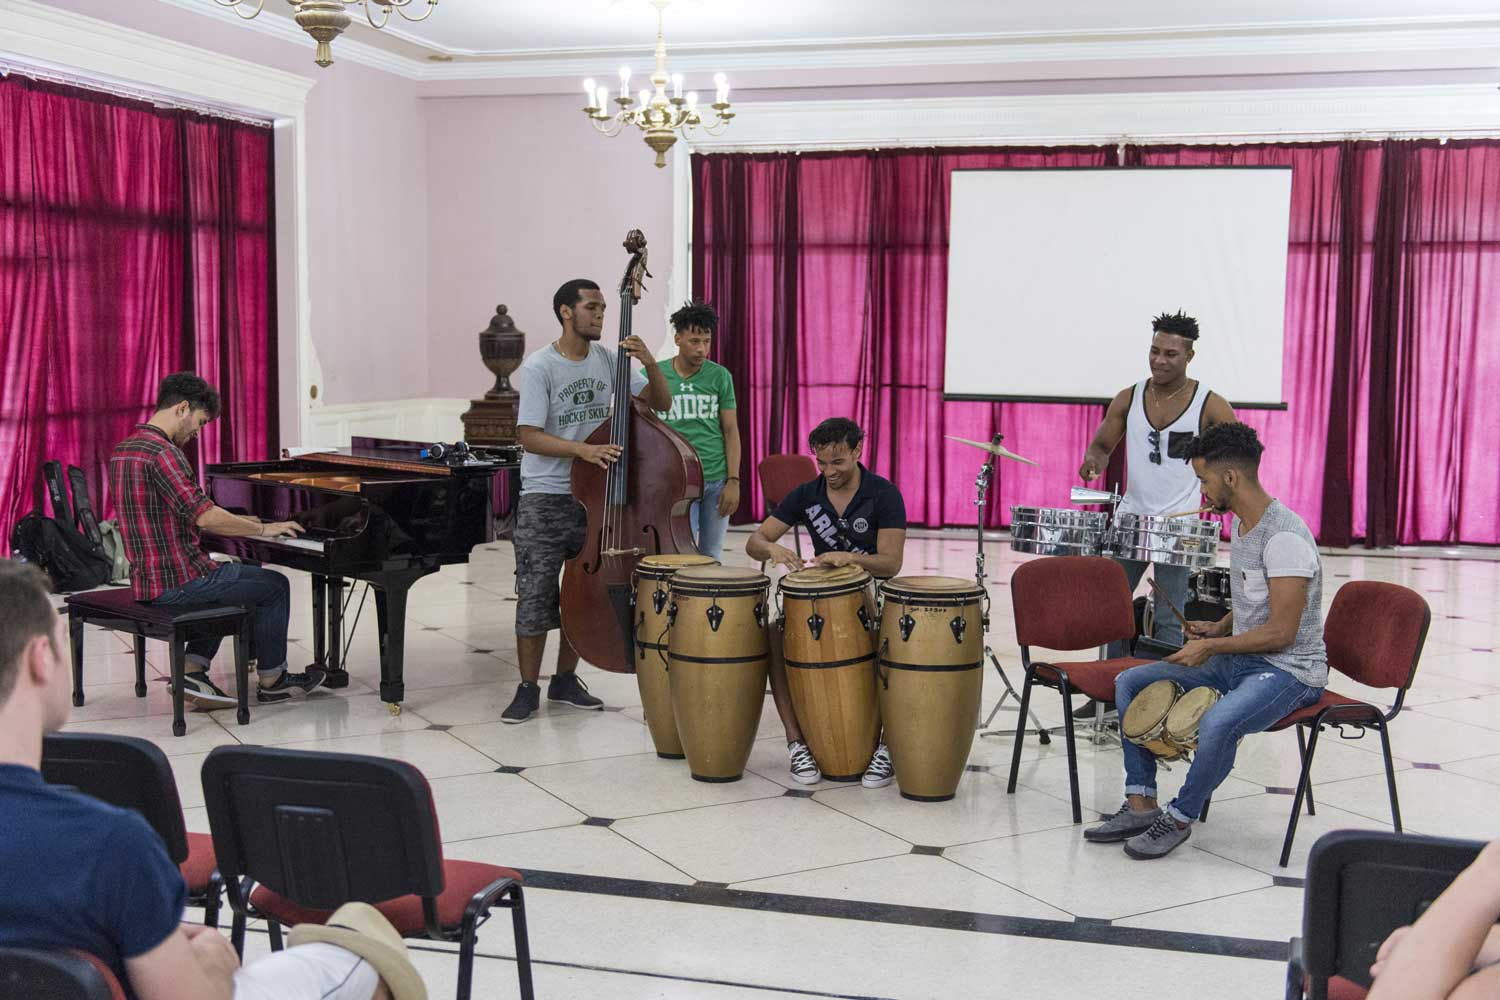 A visit to the Universidad De Les Artes included a performance by Cuban students followed by UM students performing and then a combination of musicians from both countries